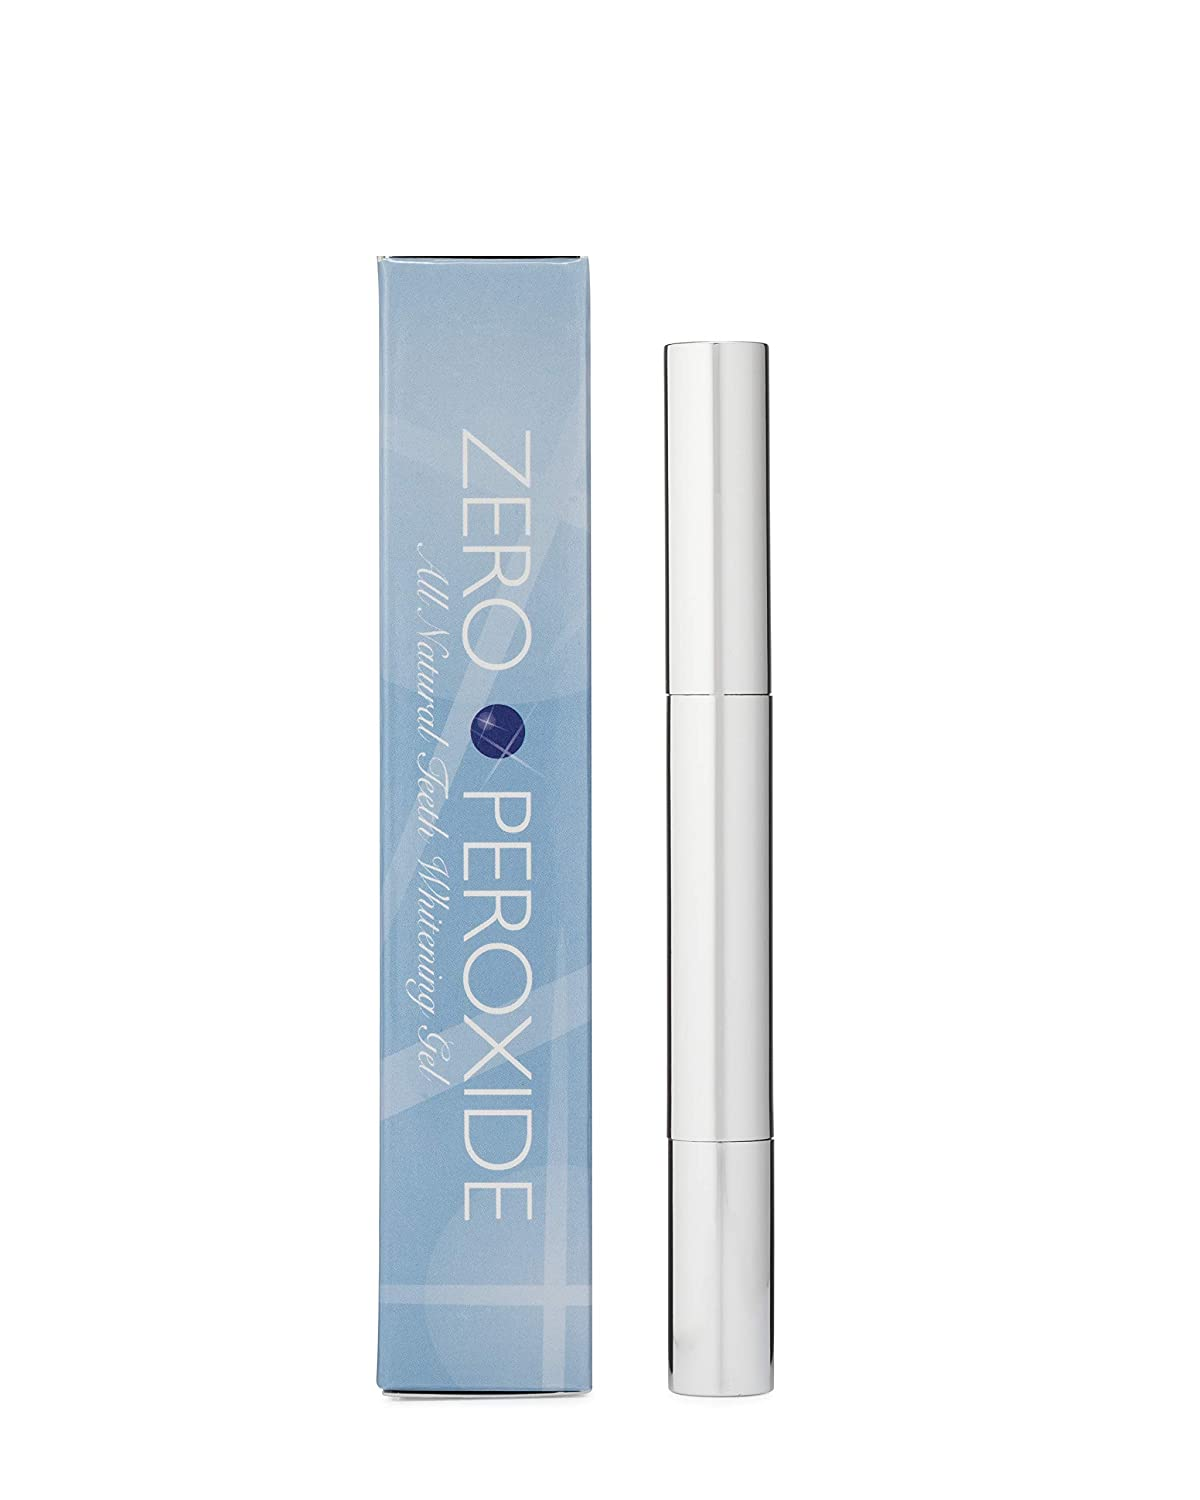 Zero Peroxide Teeth Whitening Pen, Natural Teeth Whitening Gel, Instant Professional Results, Made in USA, No Sensitivity, 2mL